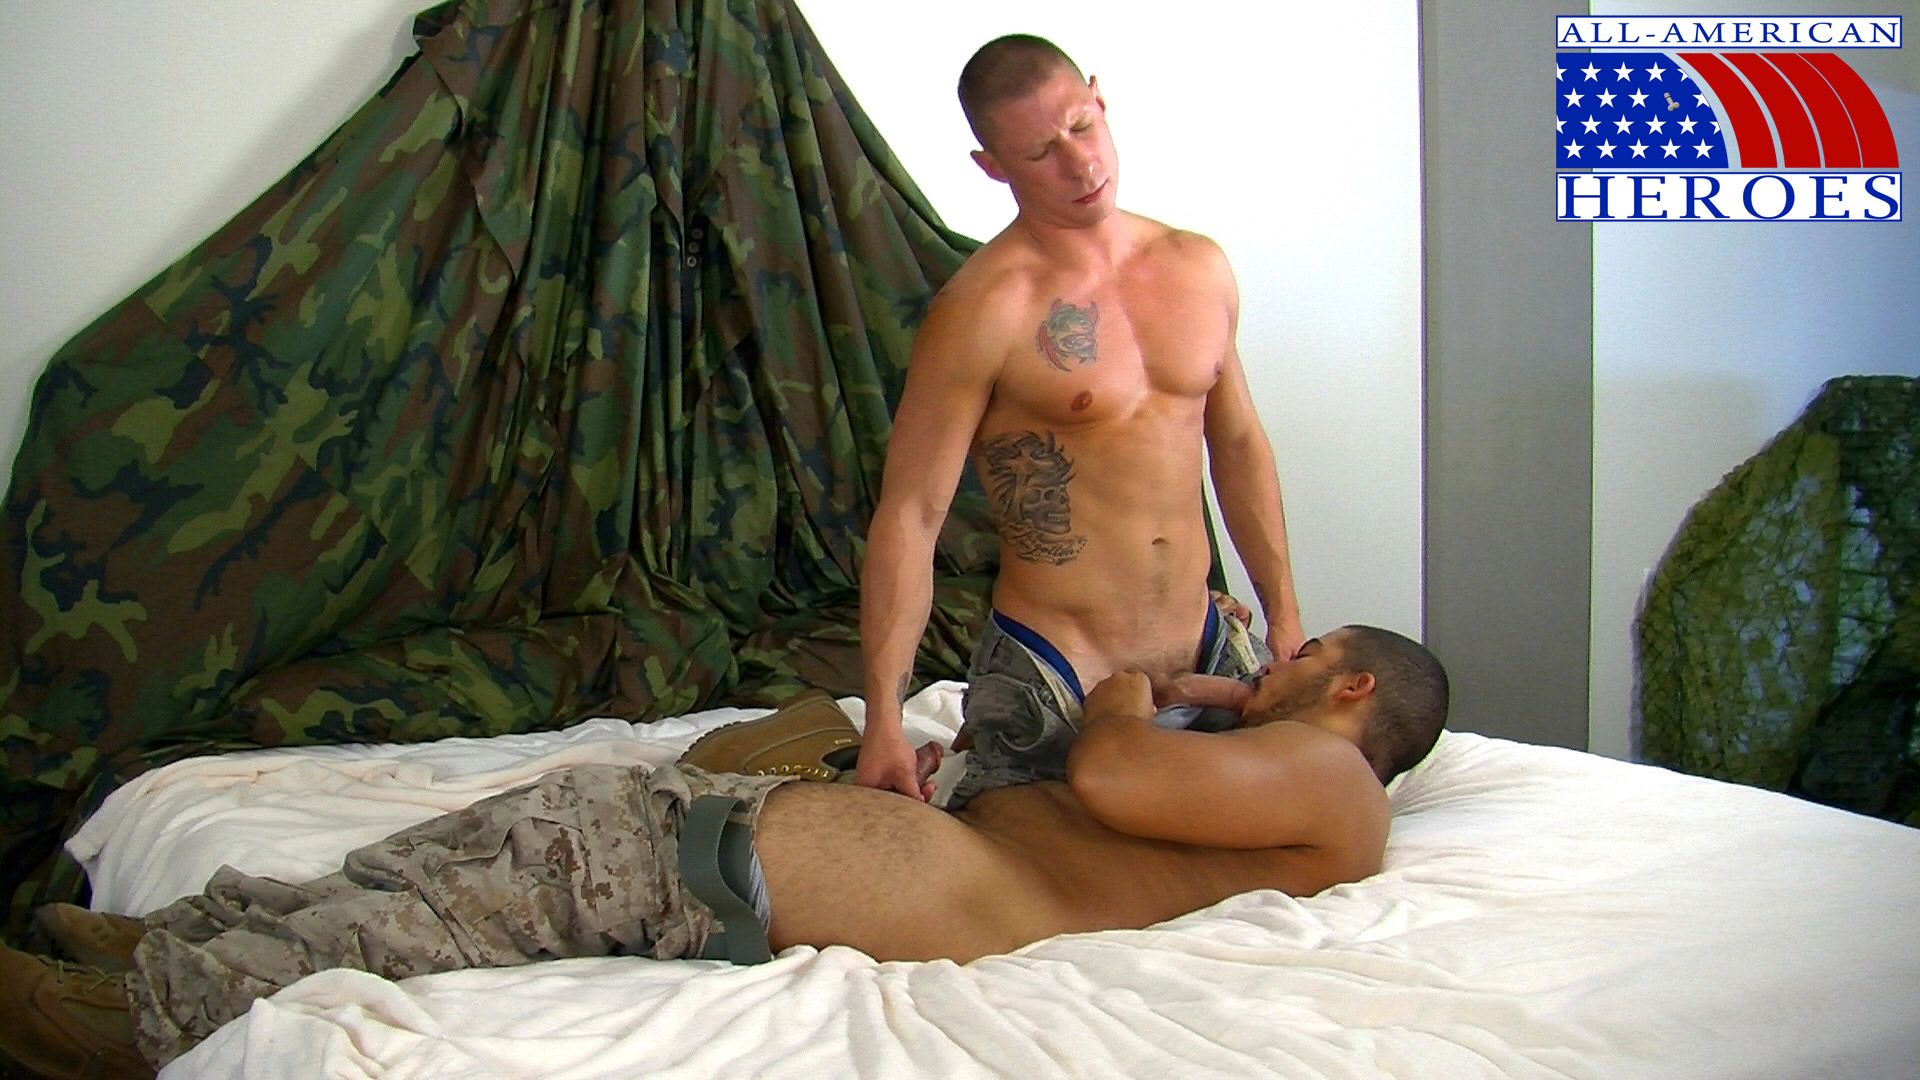 All American Heros Private Tyler fucks Private Alex army marine fuck 03 Hot Amateur Army Guy With Big Cock Tops a Hairy Marine